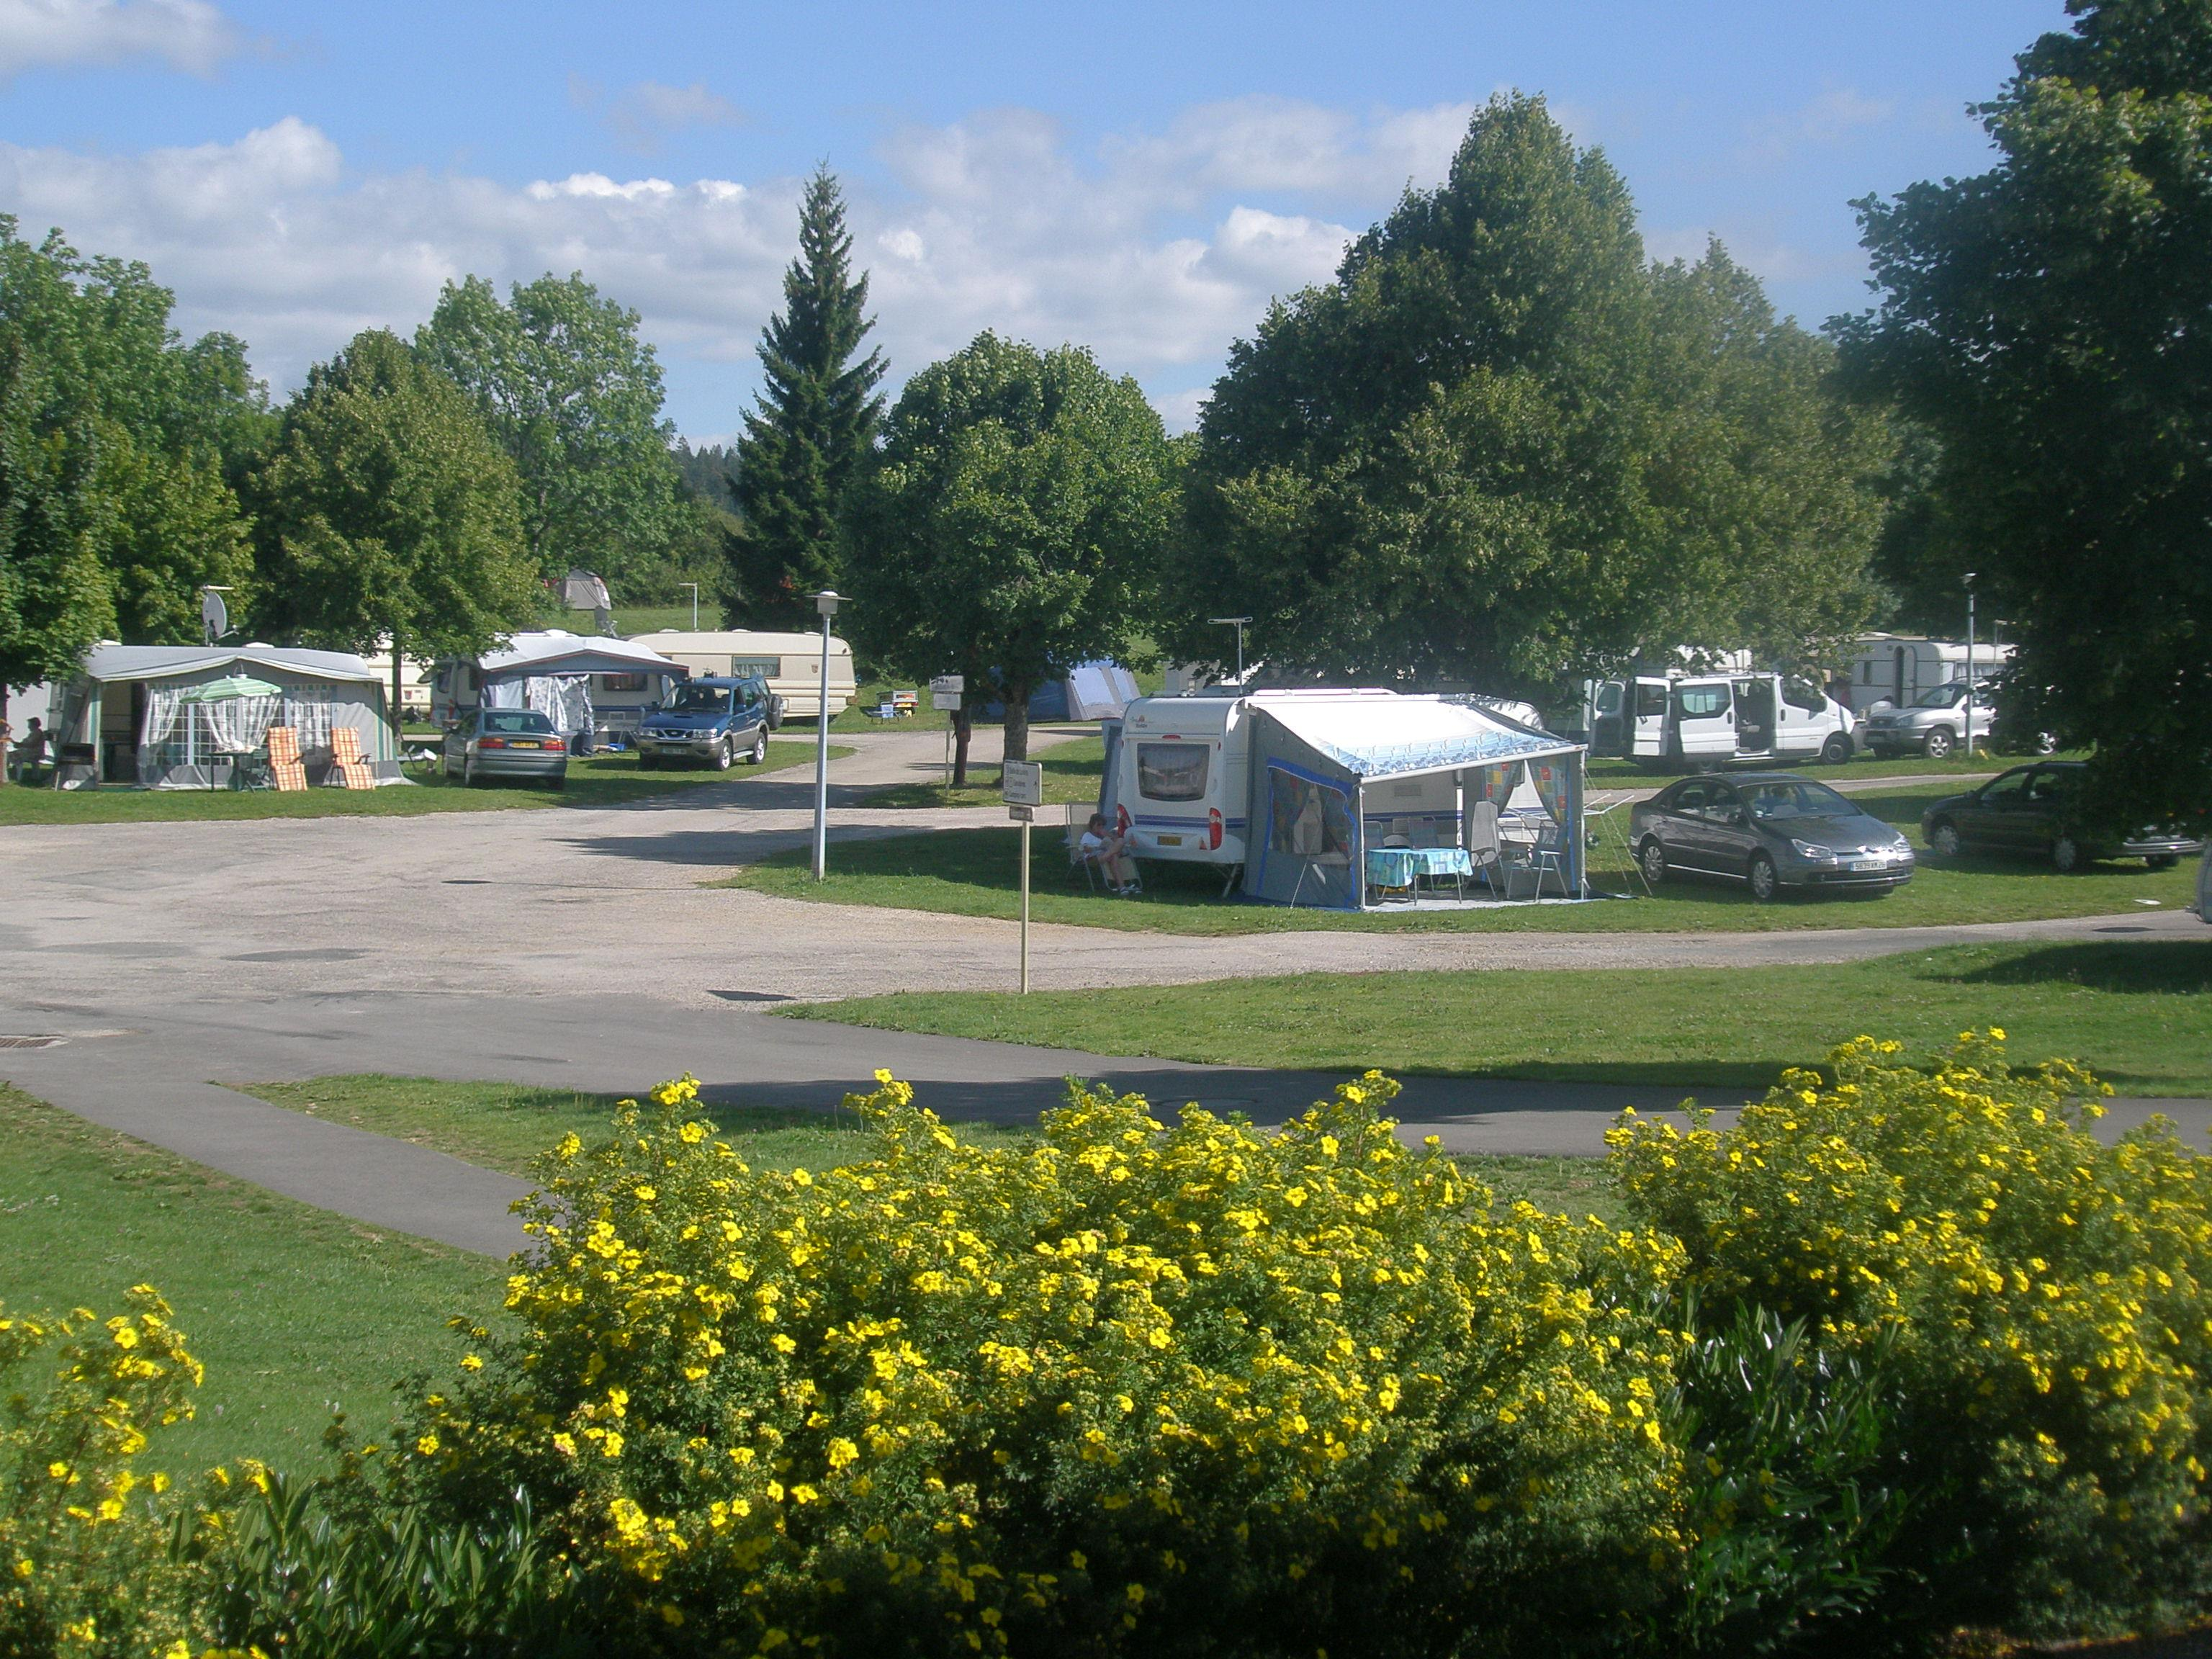 Etablissement Camping Le Champ De Mars - Saint Laurent En Grandvaux